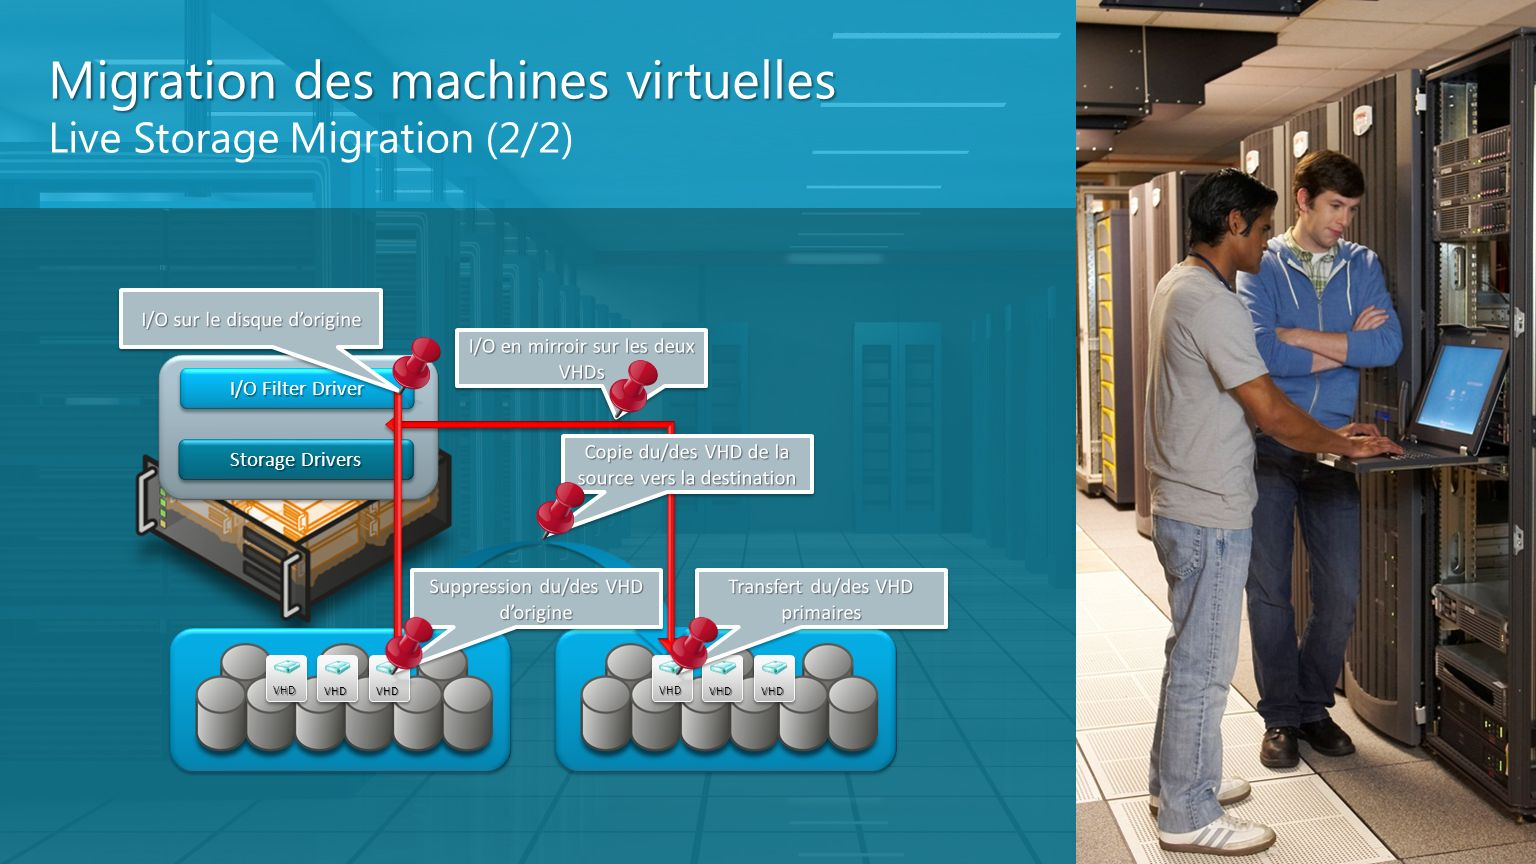 Migration des machines virtuelles